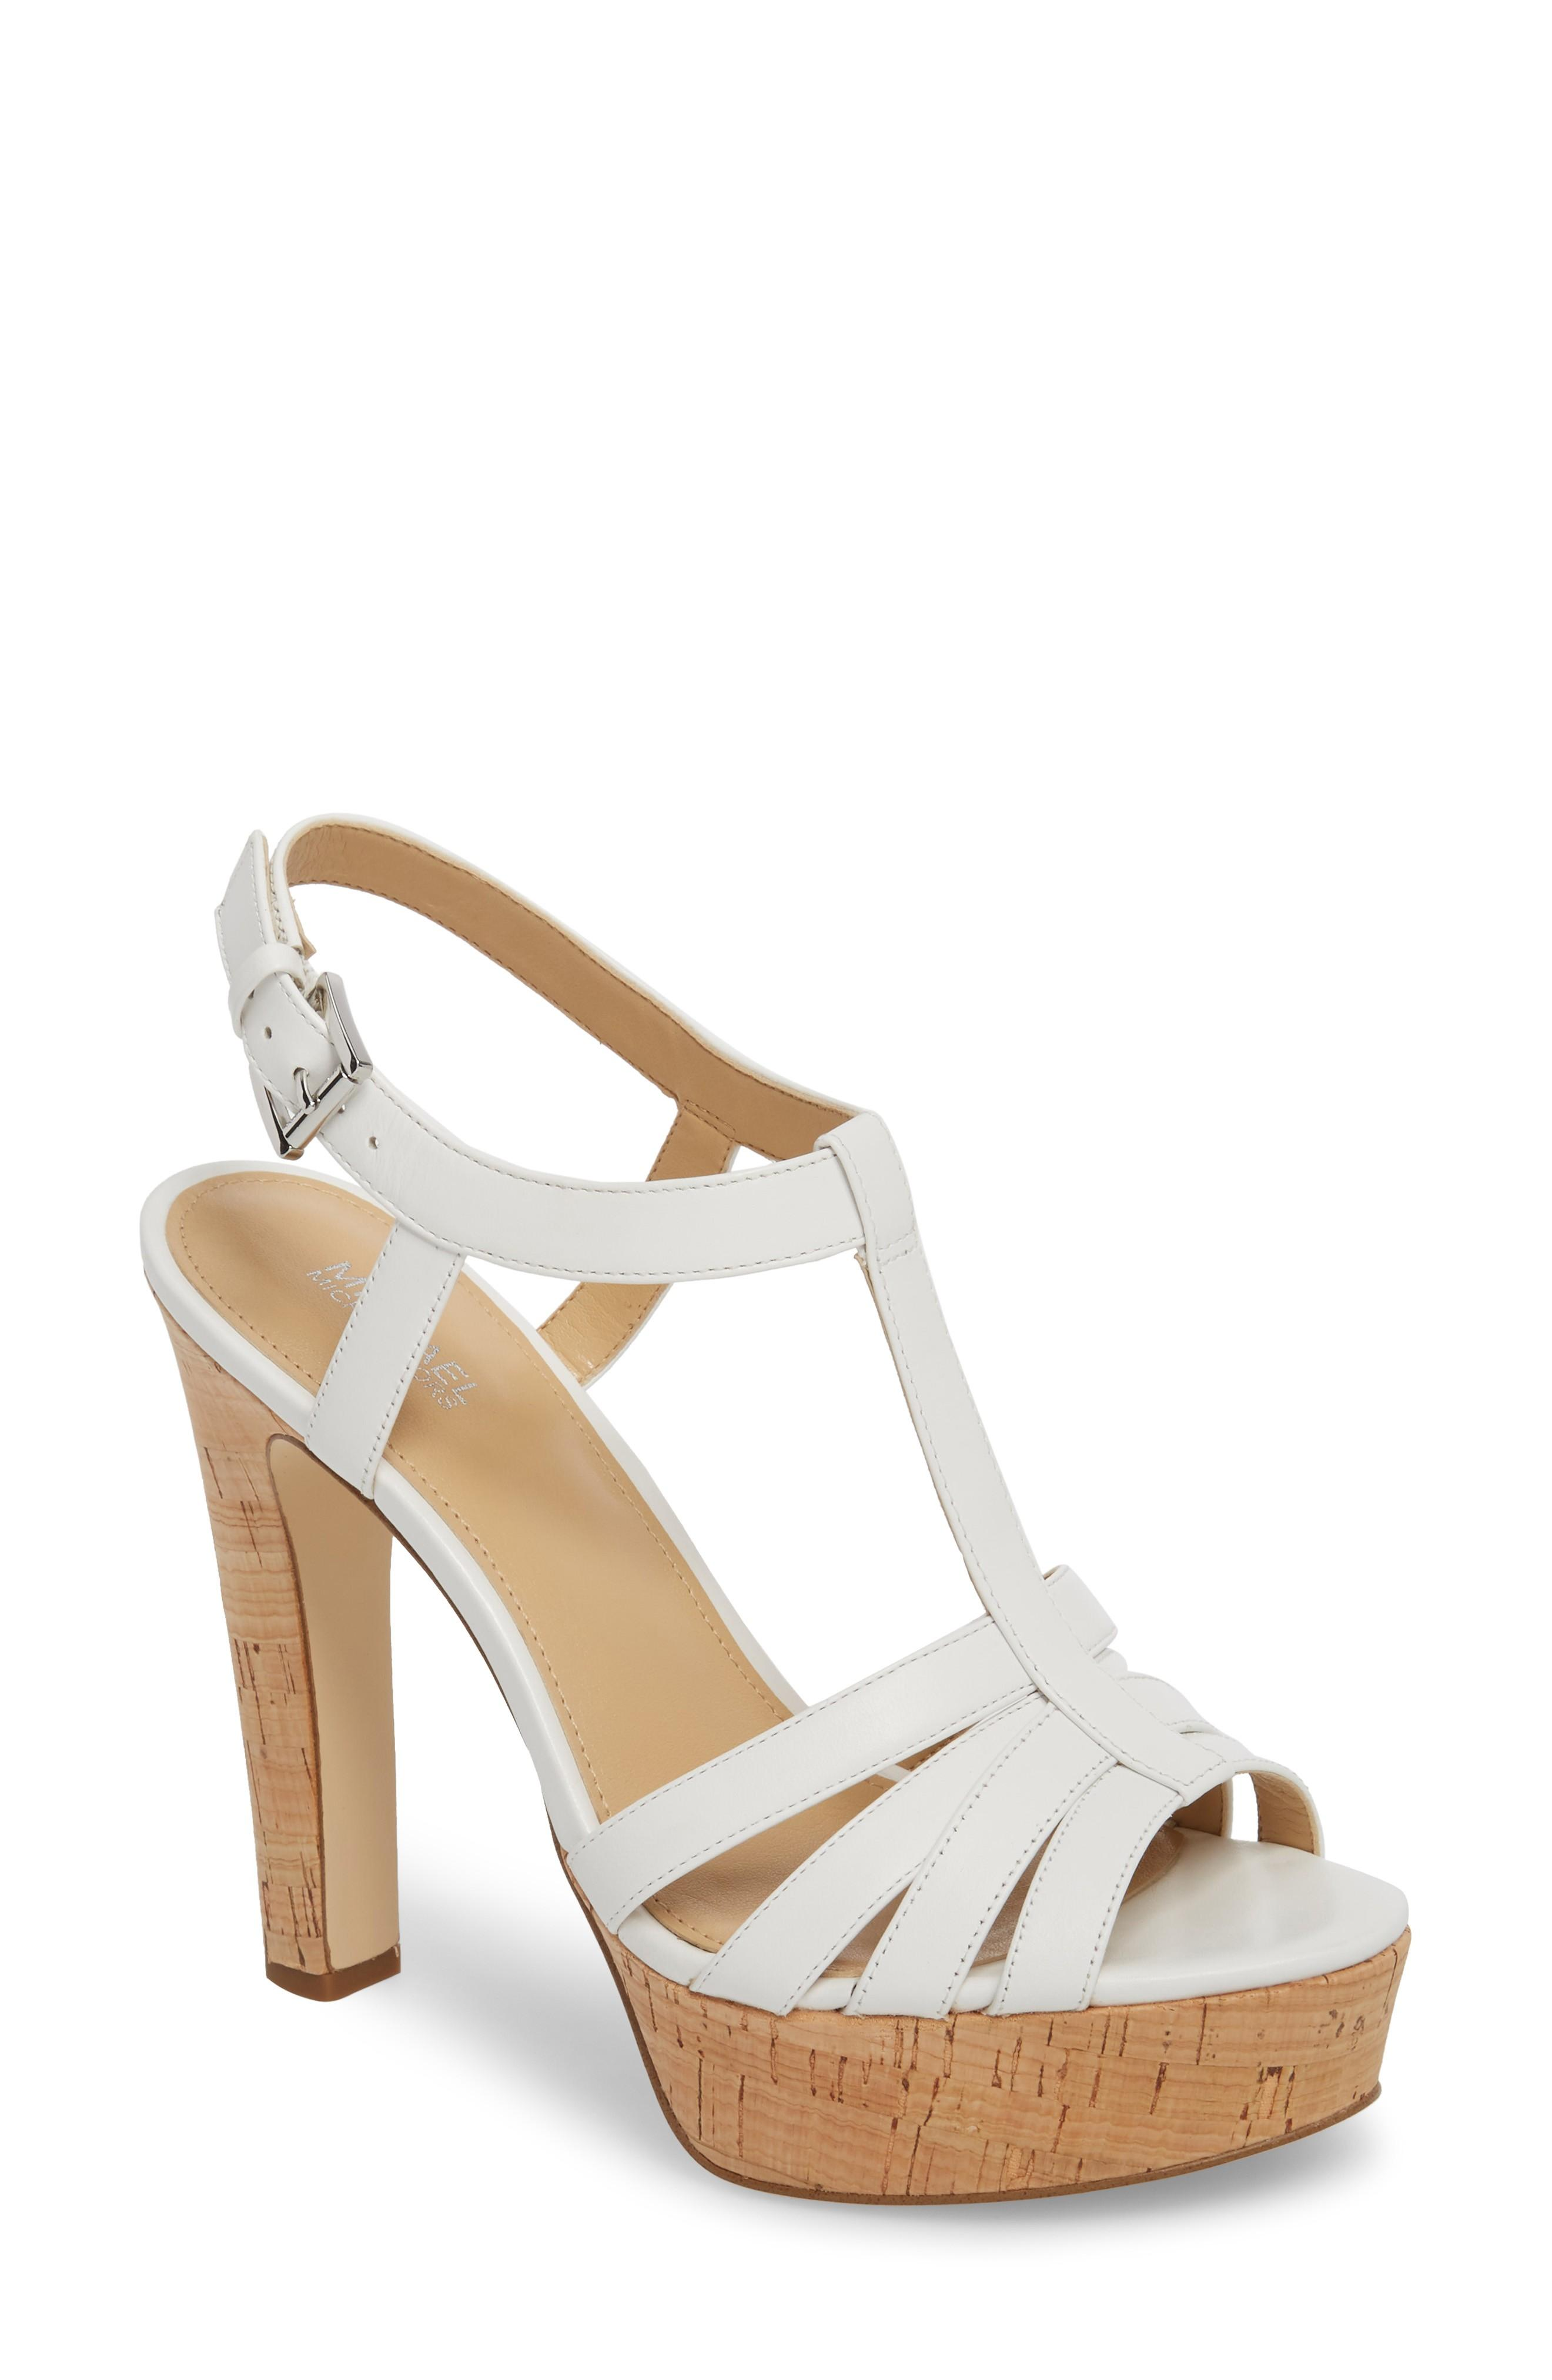 76c7cfefcf Michael Michael Kors Catalina Platform Sandal In Optic White | ModeSens